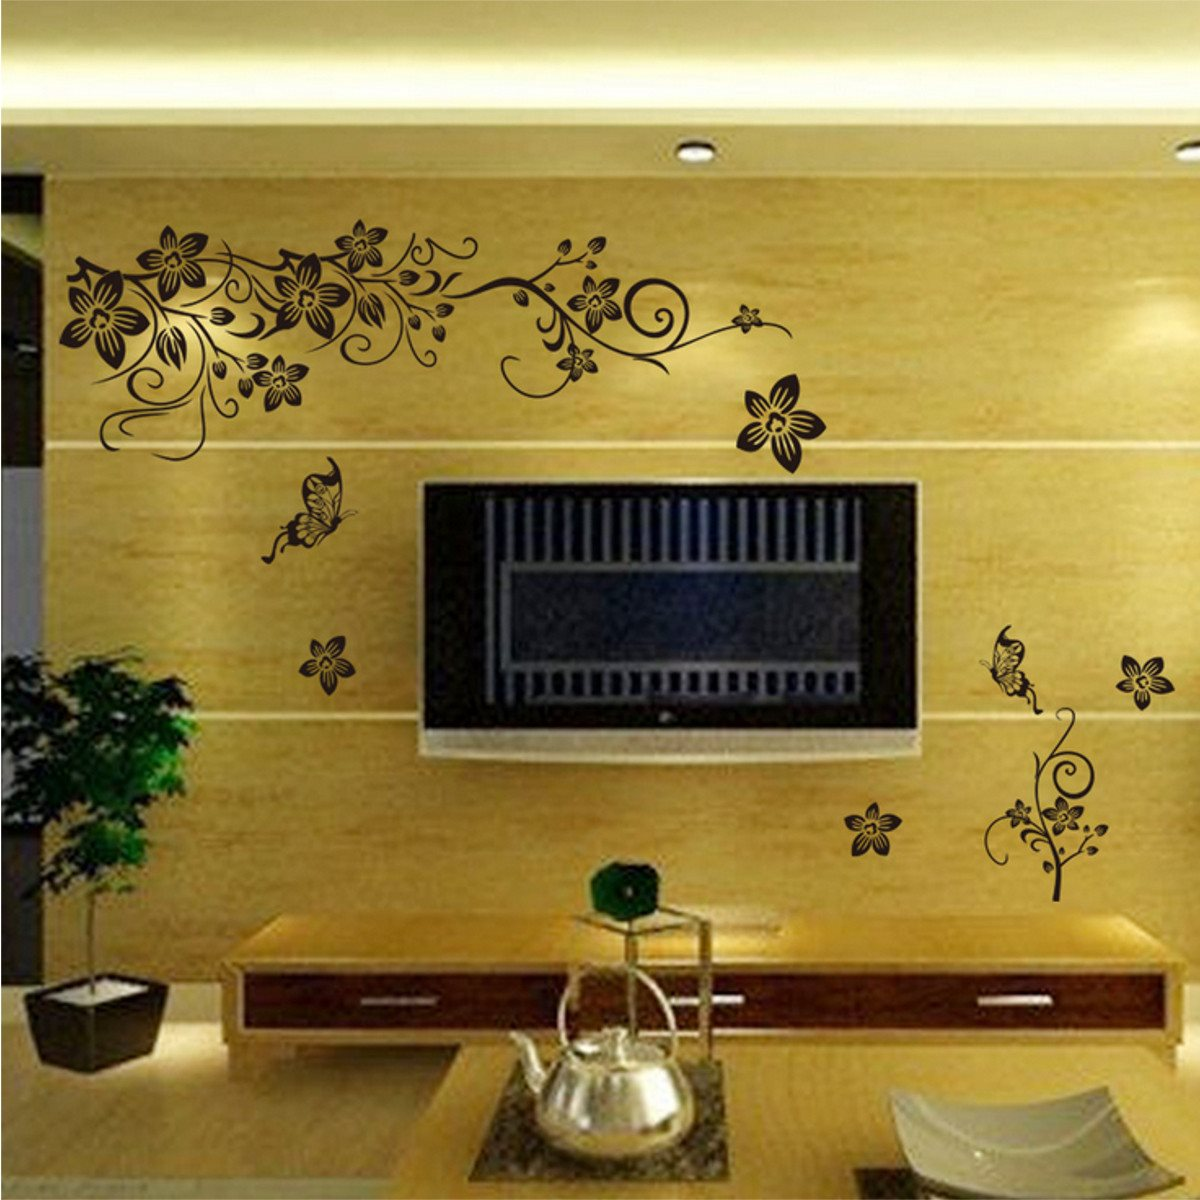 Generous Adhesive Wall Art Ideas - The Wall Art Decorations ...